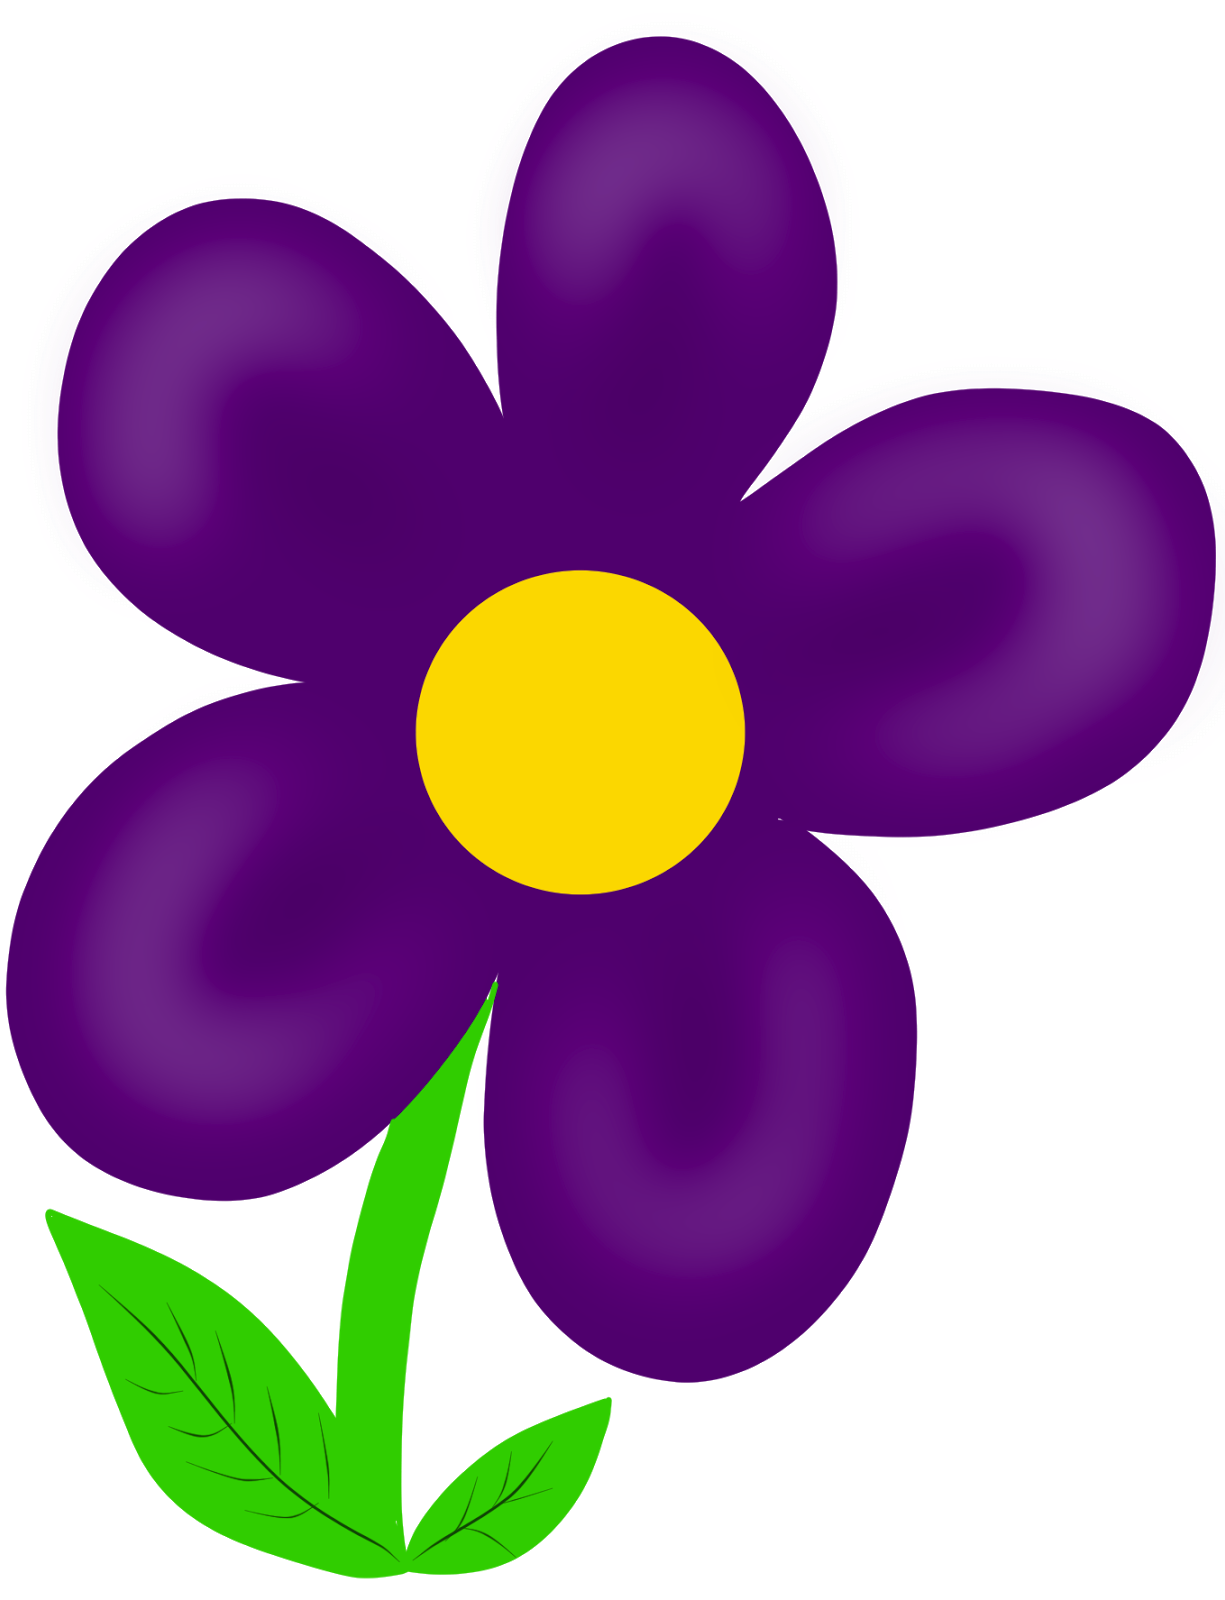 Purple Flower clipart #5, Download drawings